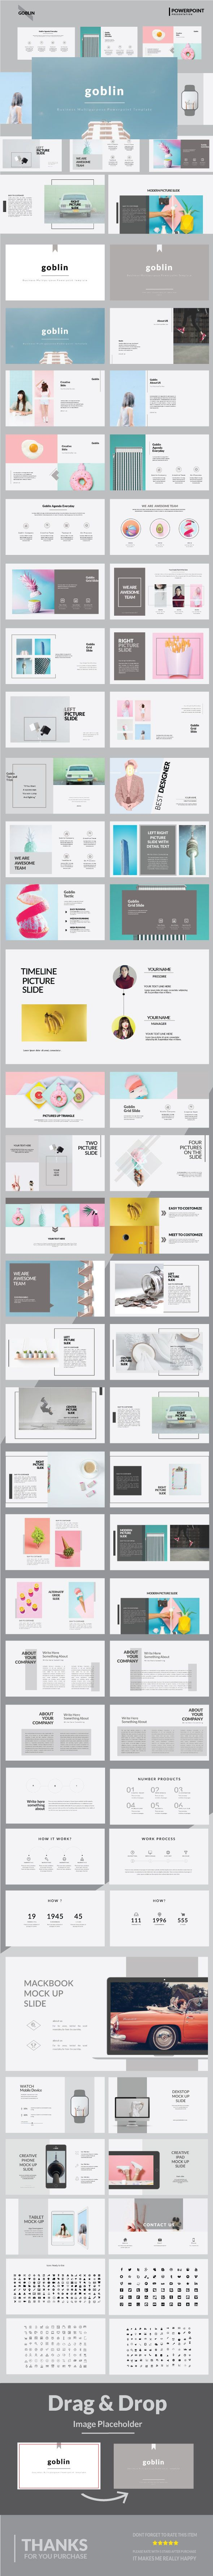 Keynote Presentation Templates — Keynote KEY #tech #statistics • Download ➝ https://graphicriver.net/item/goblin-keynote-presentation-templates/19707227?ref=pxcr